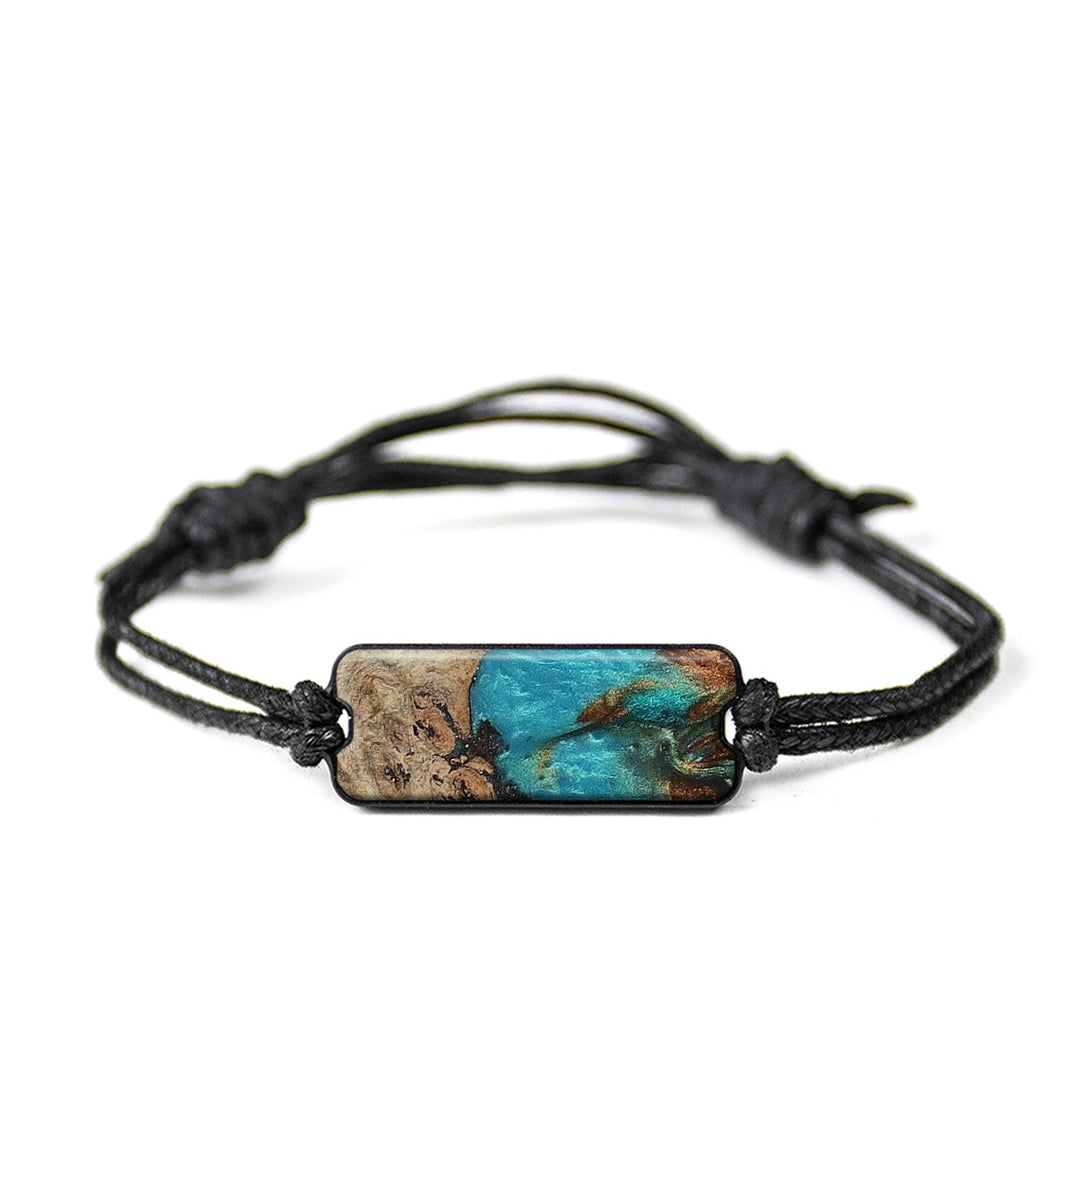 Classic Wood+Resin Bracelet - Chrissy (Teal & Gold, 395426)